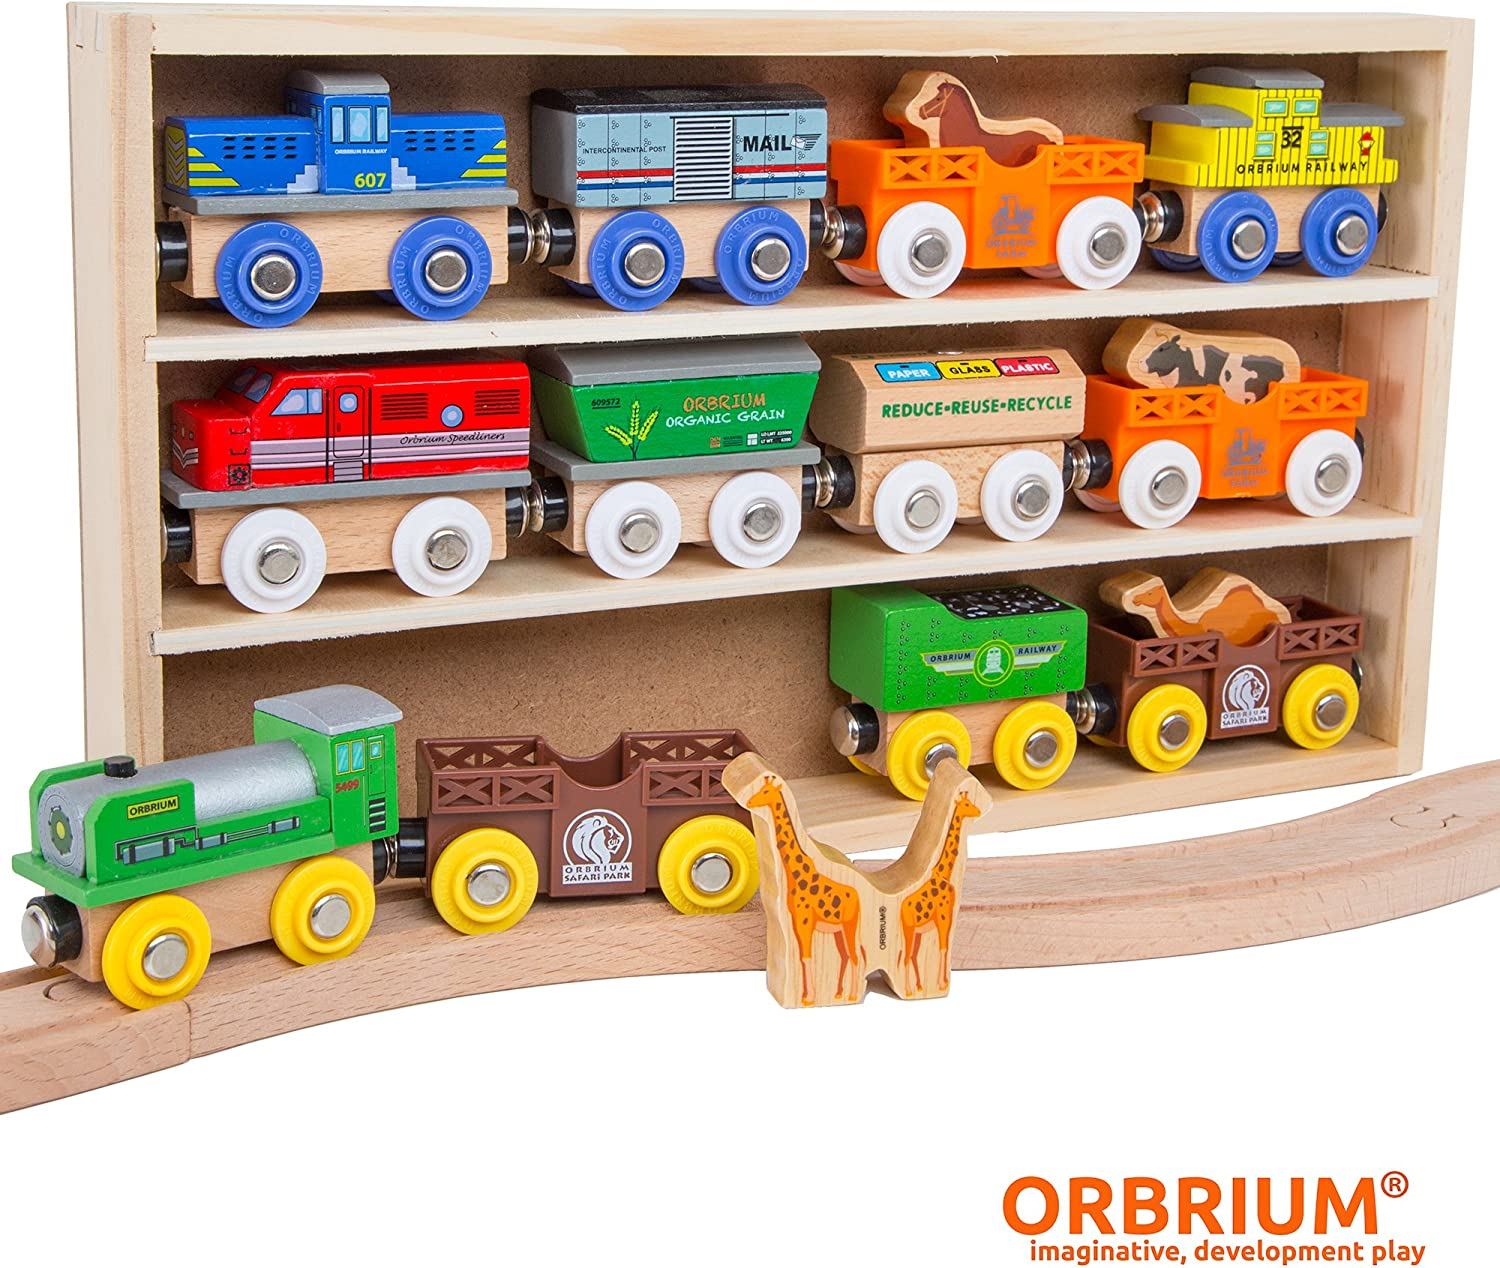 Pack of 4 Orbrium Toys Unpainted Wooden Train Cars Compatible with Thomas Brio Chuggington Great for Party